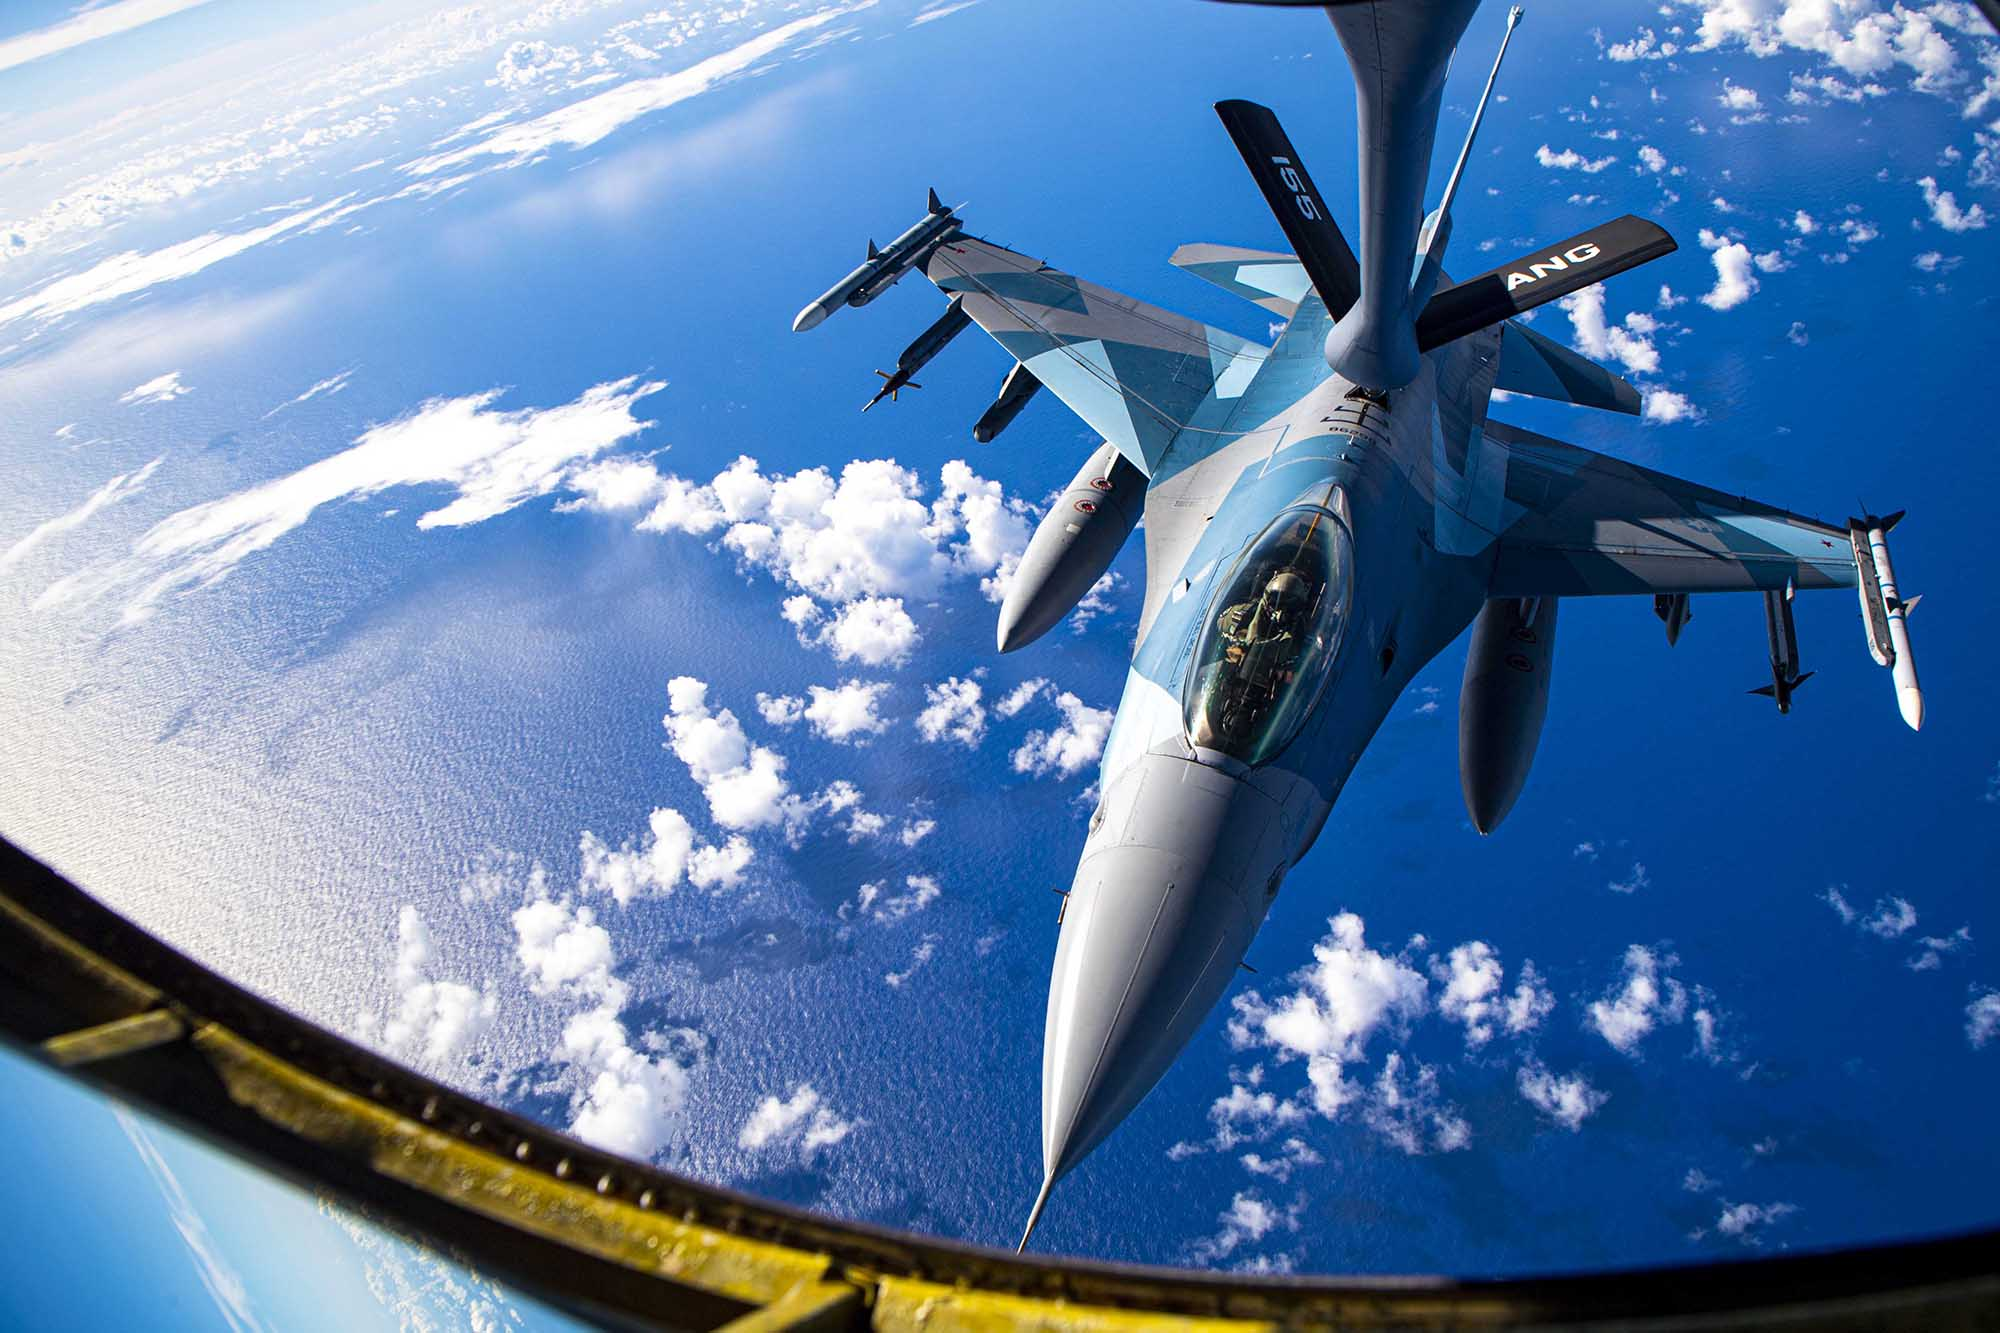 An Air Force F-16 Fighting Falcon conducts an aerial refueling with an Air Force KC-135 Stratotanker during exercise Cope North 21 near Andersen Air Force Base, Guam, Feb. 18, 2021. (Senior Airman Duncan C. Bevan/Air Force)